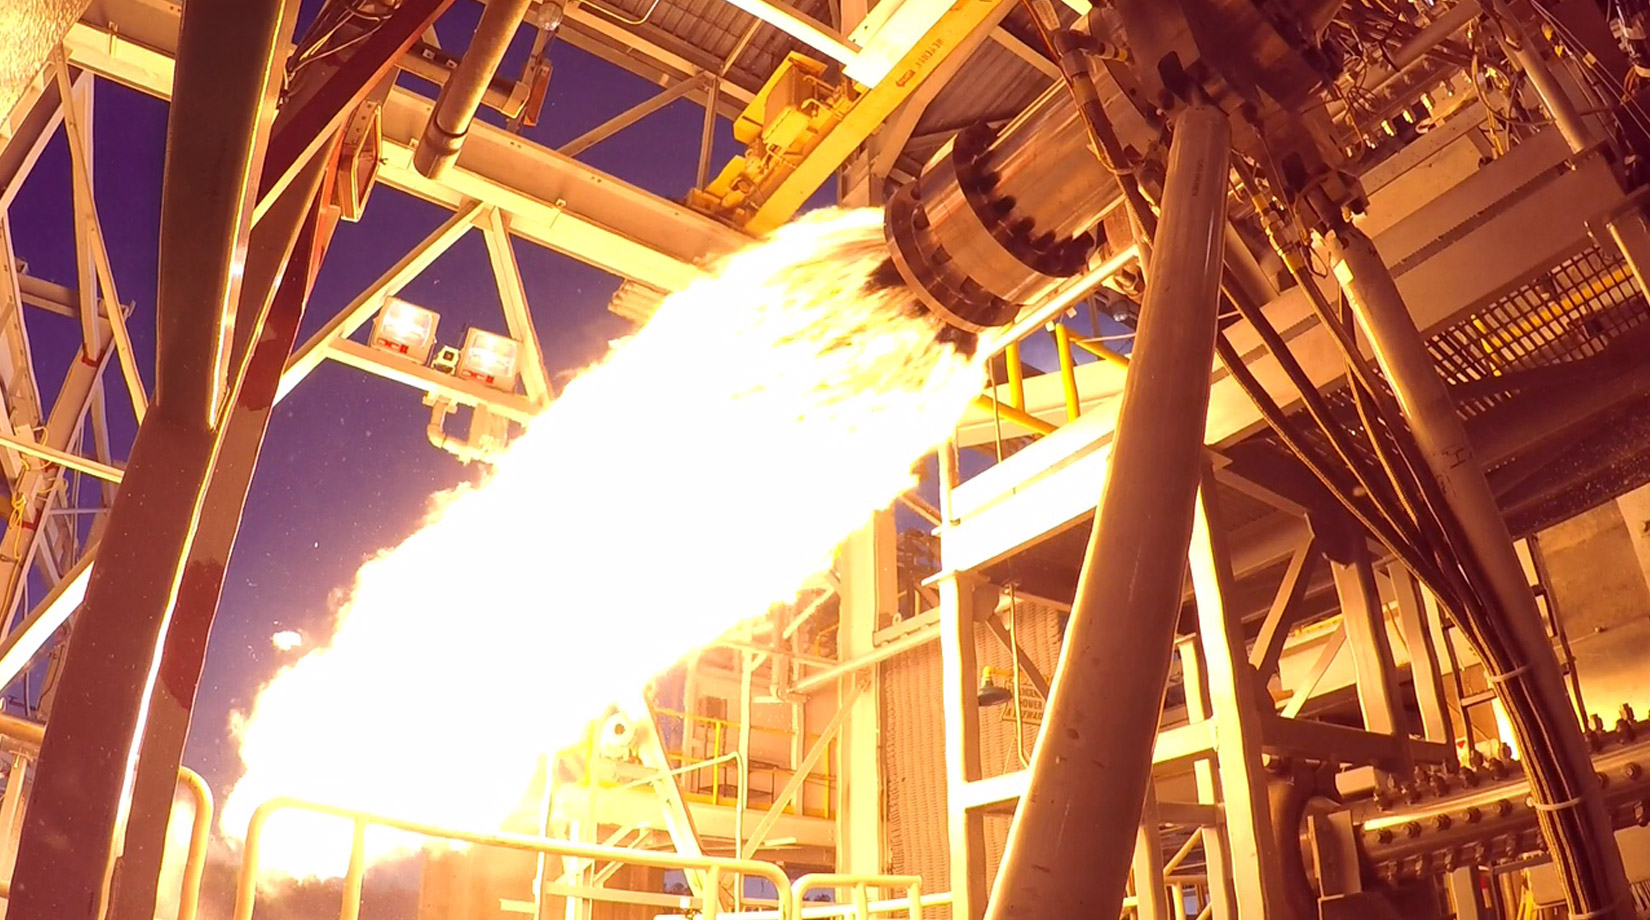 Northern Alabama companies mark the completion of NASA's Space Launch System's Core Stage pathfinder vehicle thumbnail image